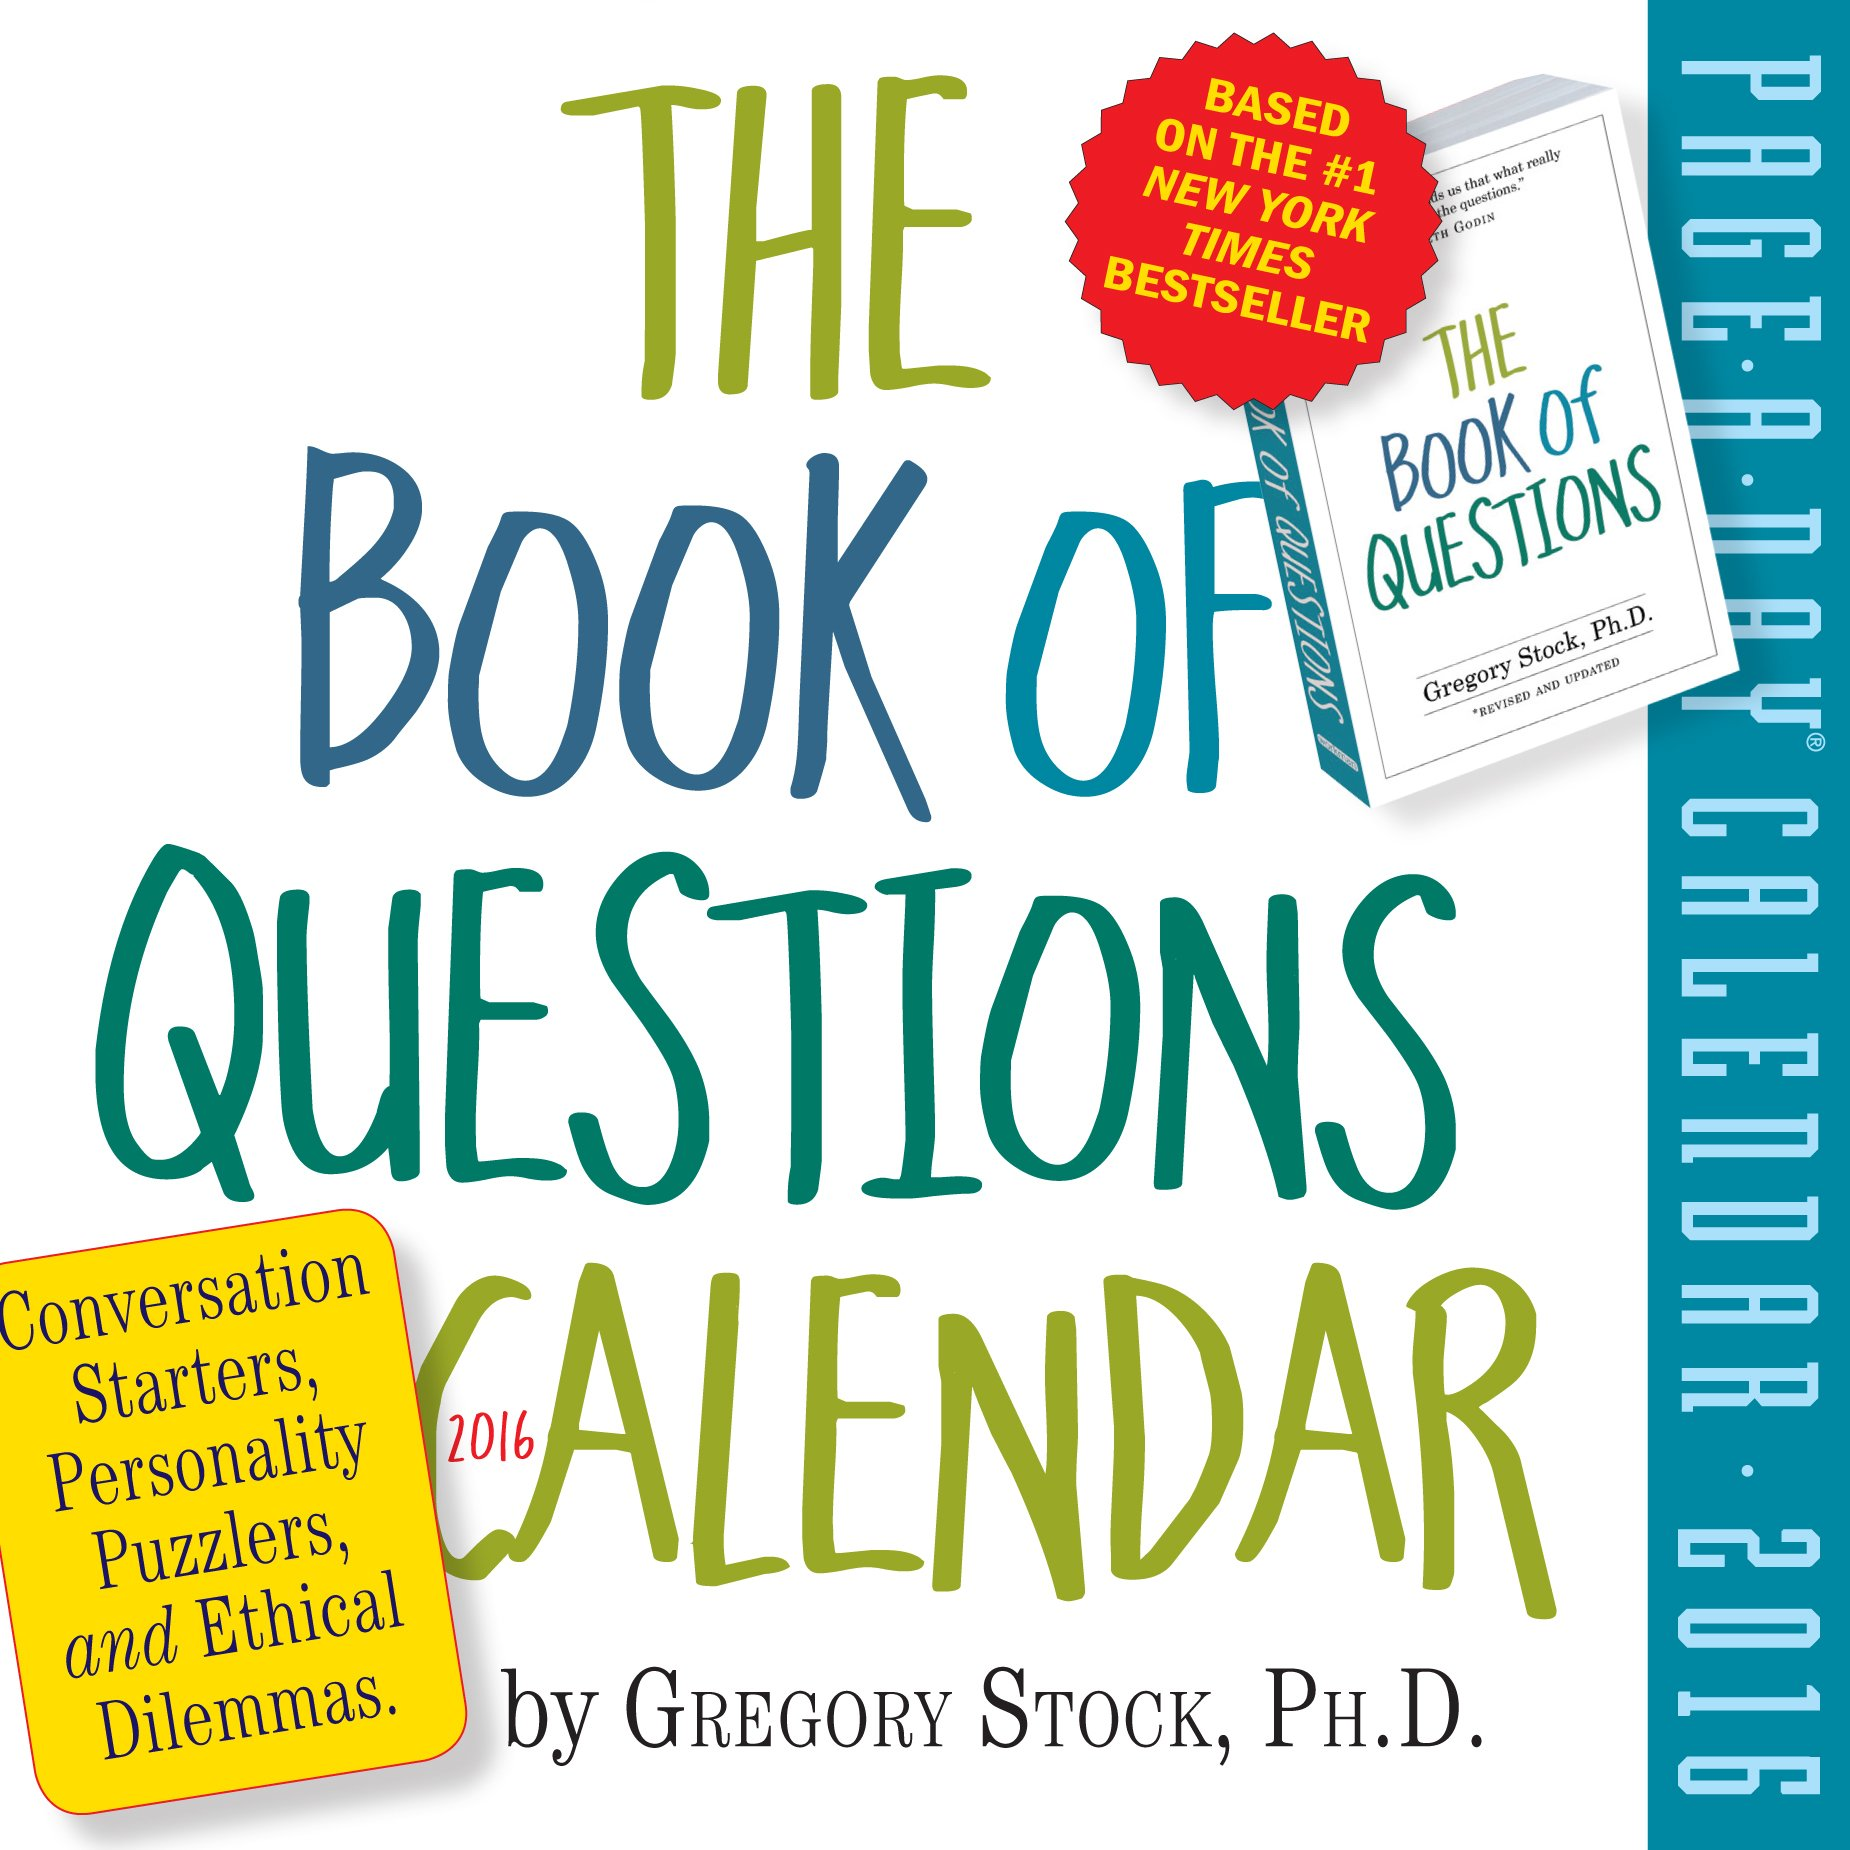 Book Questions Page Day Calendar product image